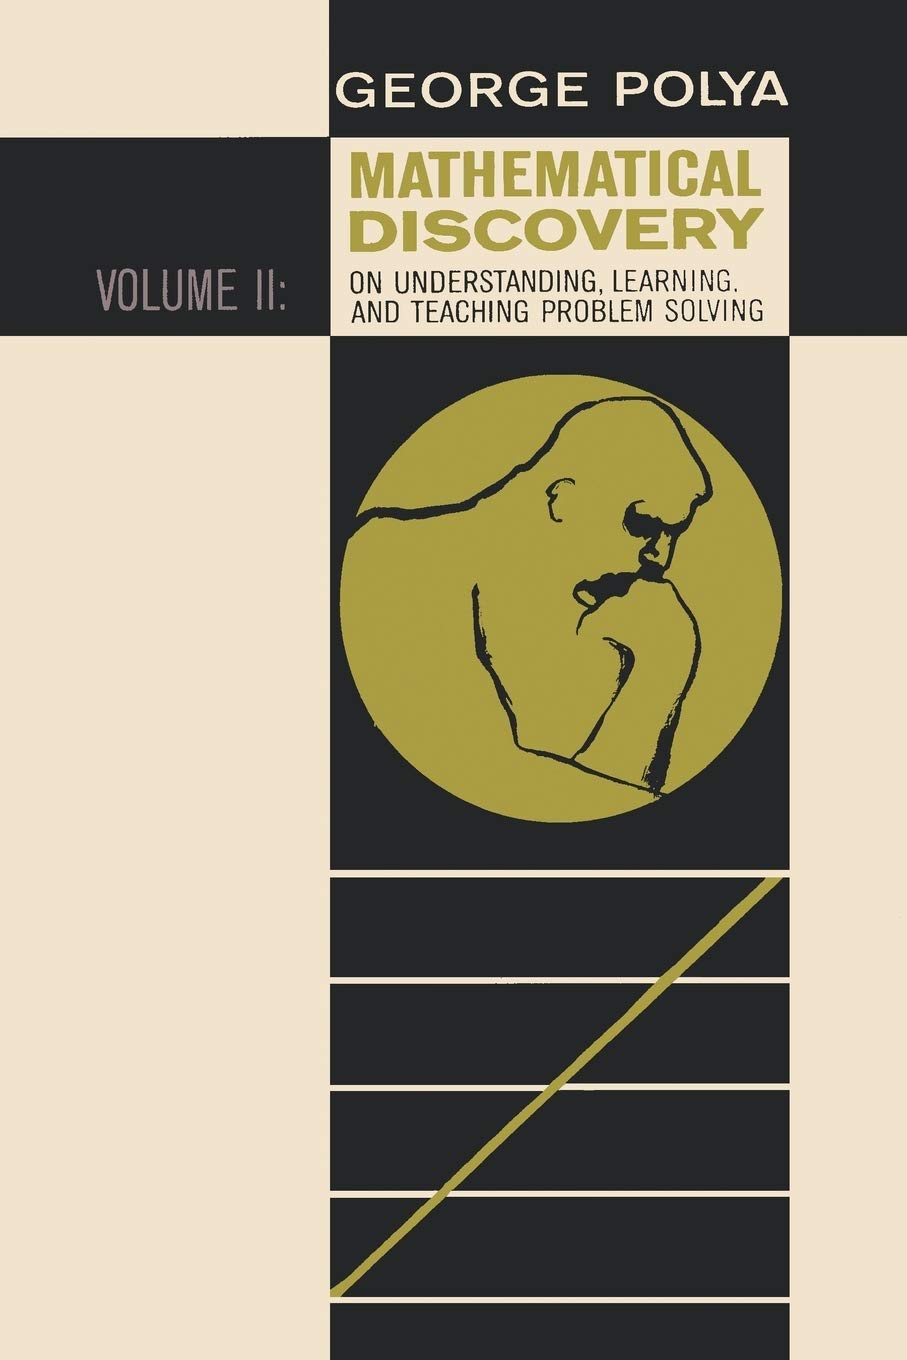 MATHEMATICAL DISCOVERY ON UNDERSTANDING, LEARNING, AND TEACHING PROBLEM SOLVING: VOLUME II